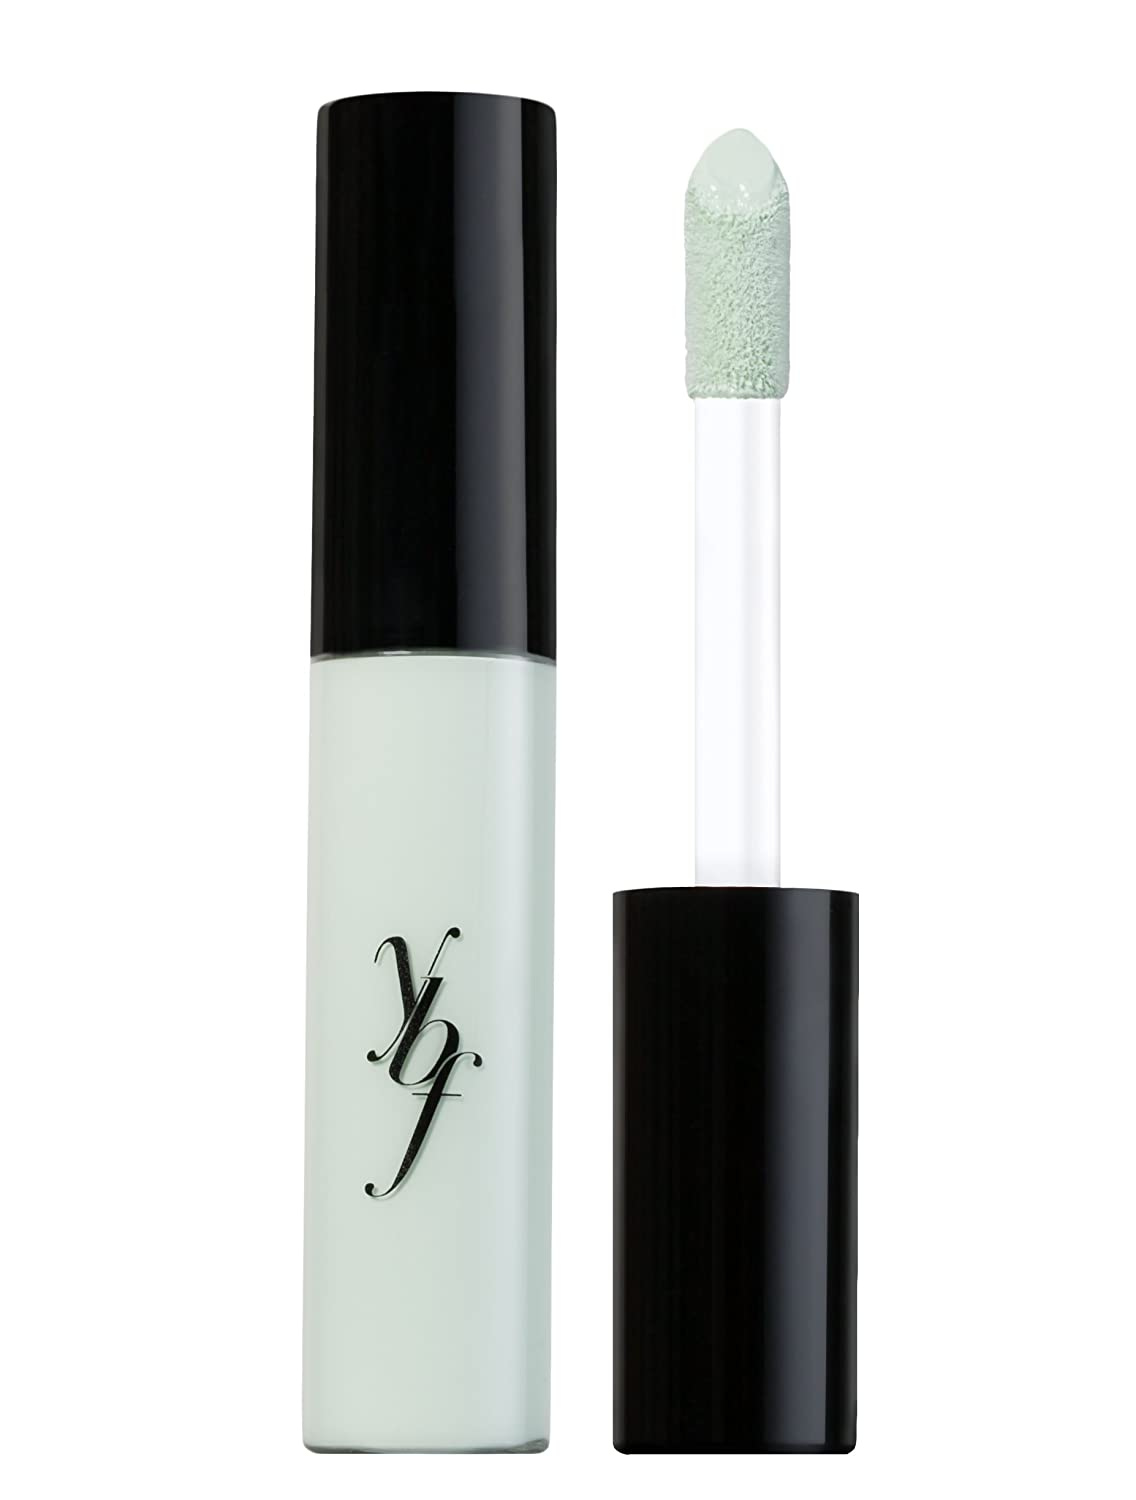 Ybf Corrective Green Concealer 4 Taking Cover Makeup